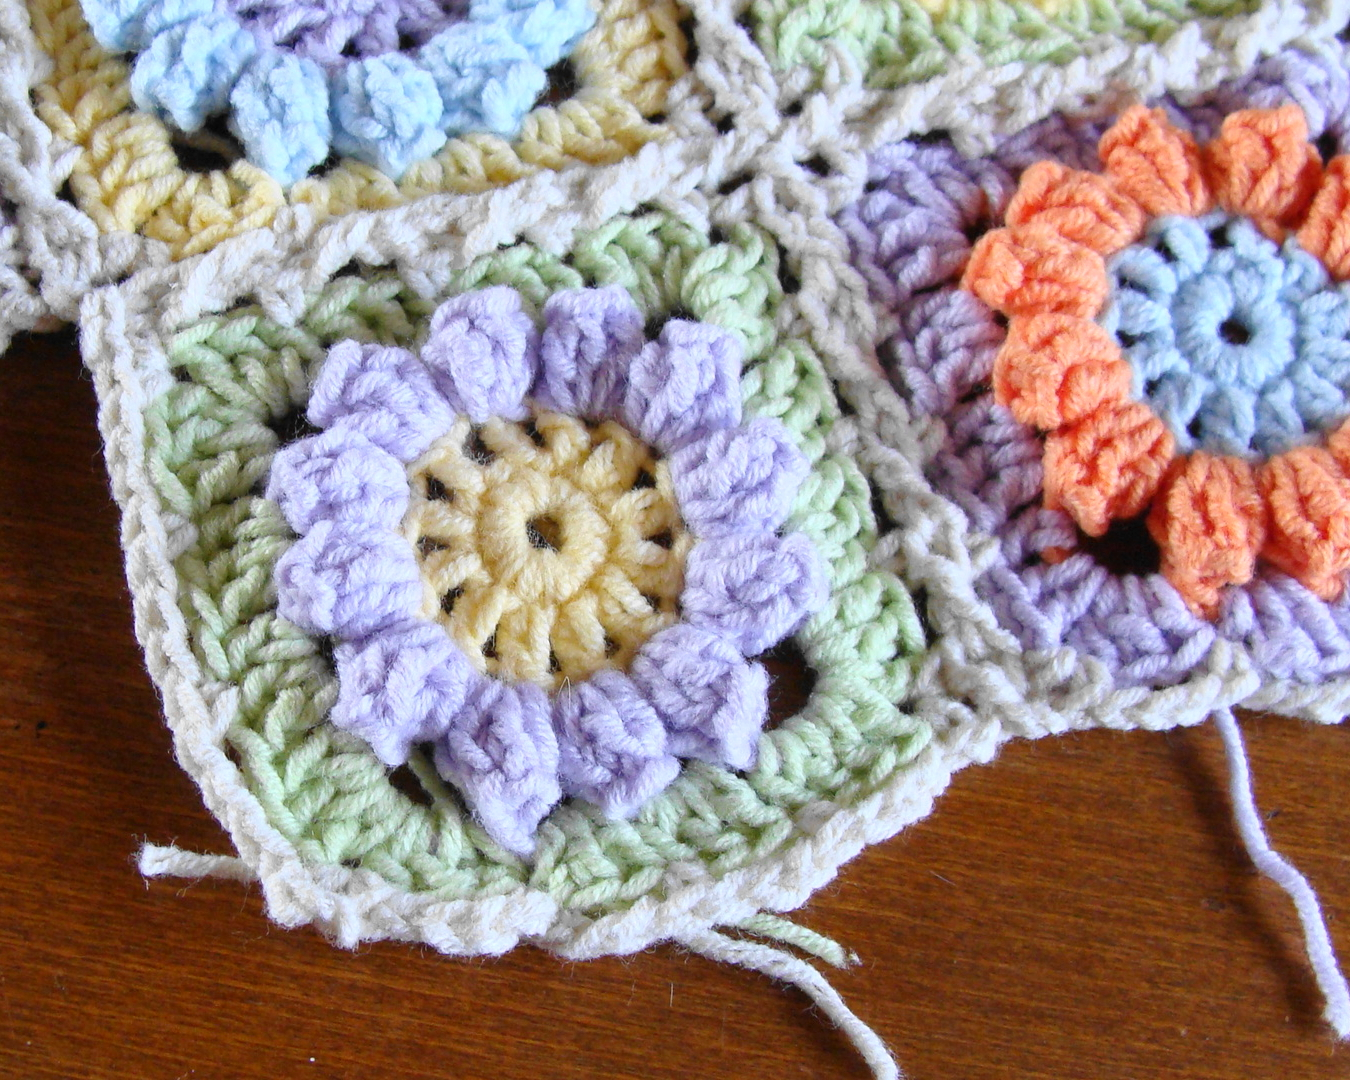 Knitting meeting granny flower square free pattern